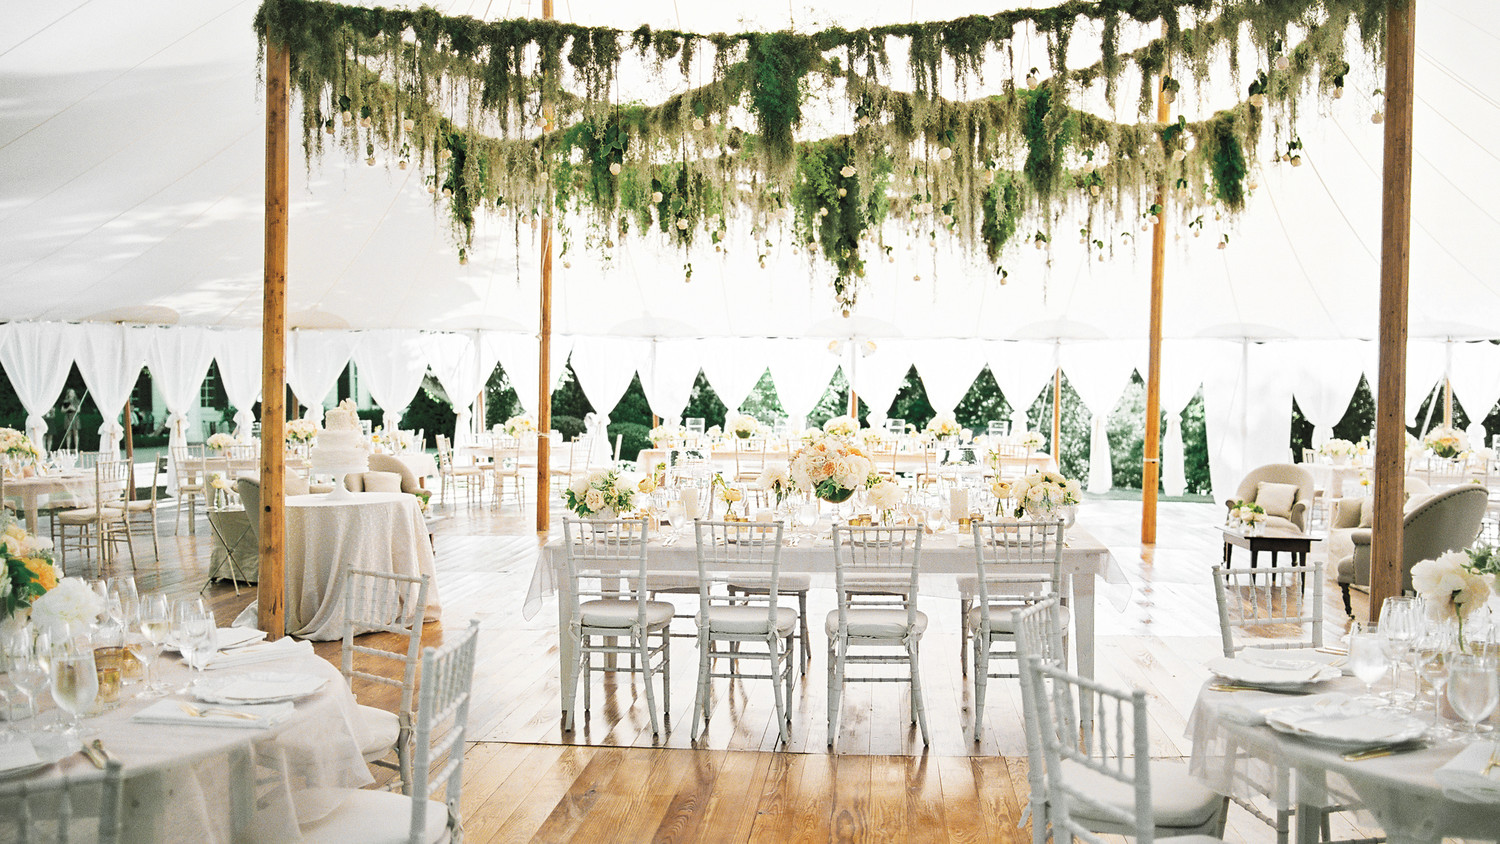 28 tent decorating ideas that will upgrade your wedding for Wedding banquet decorations